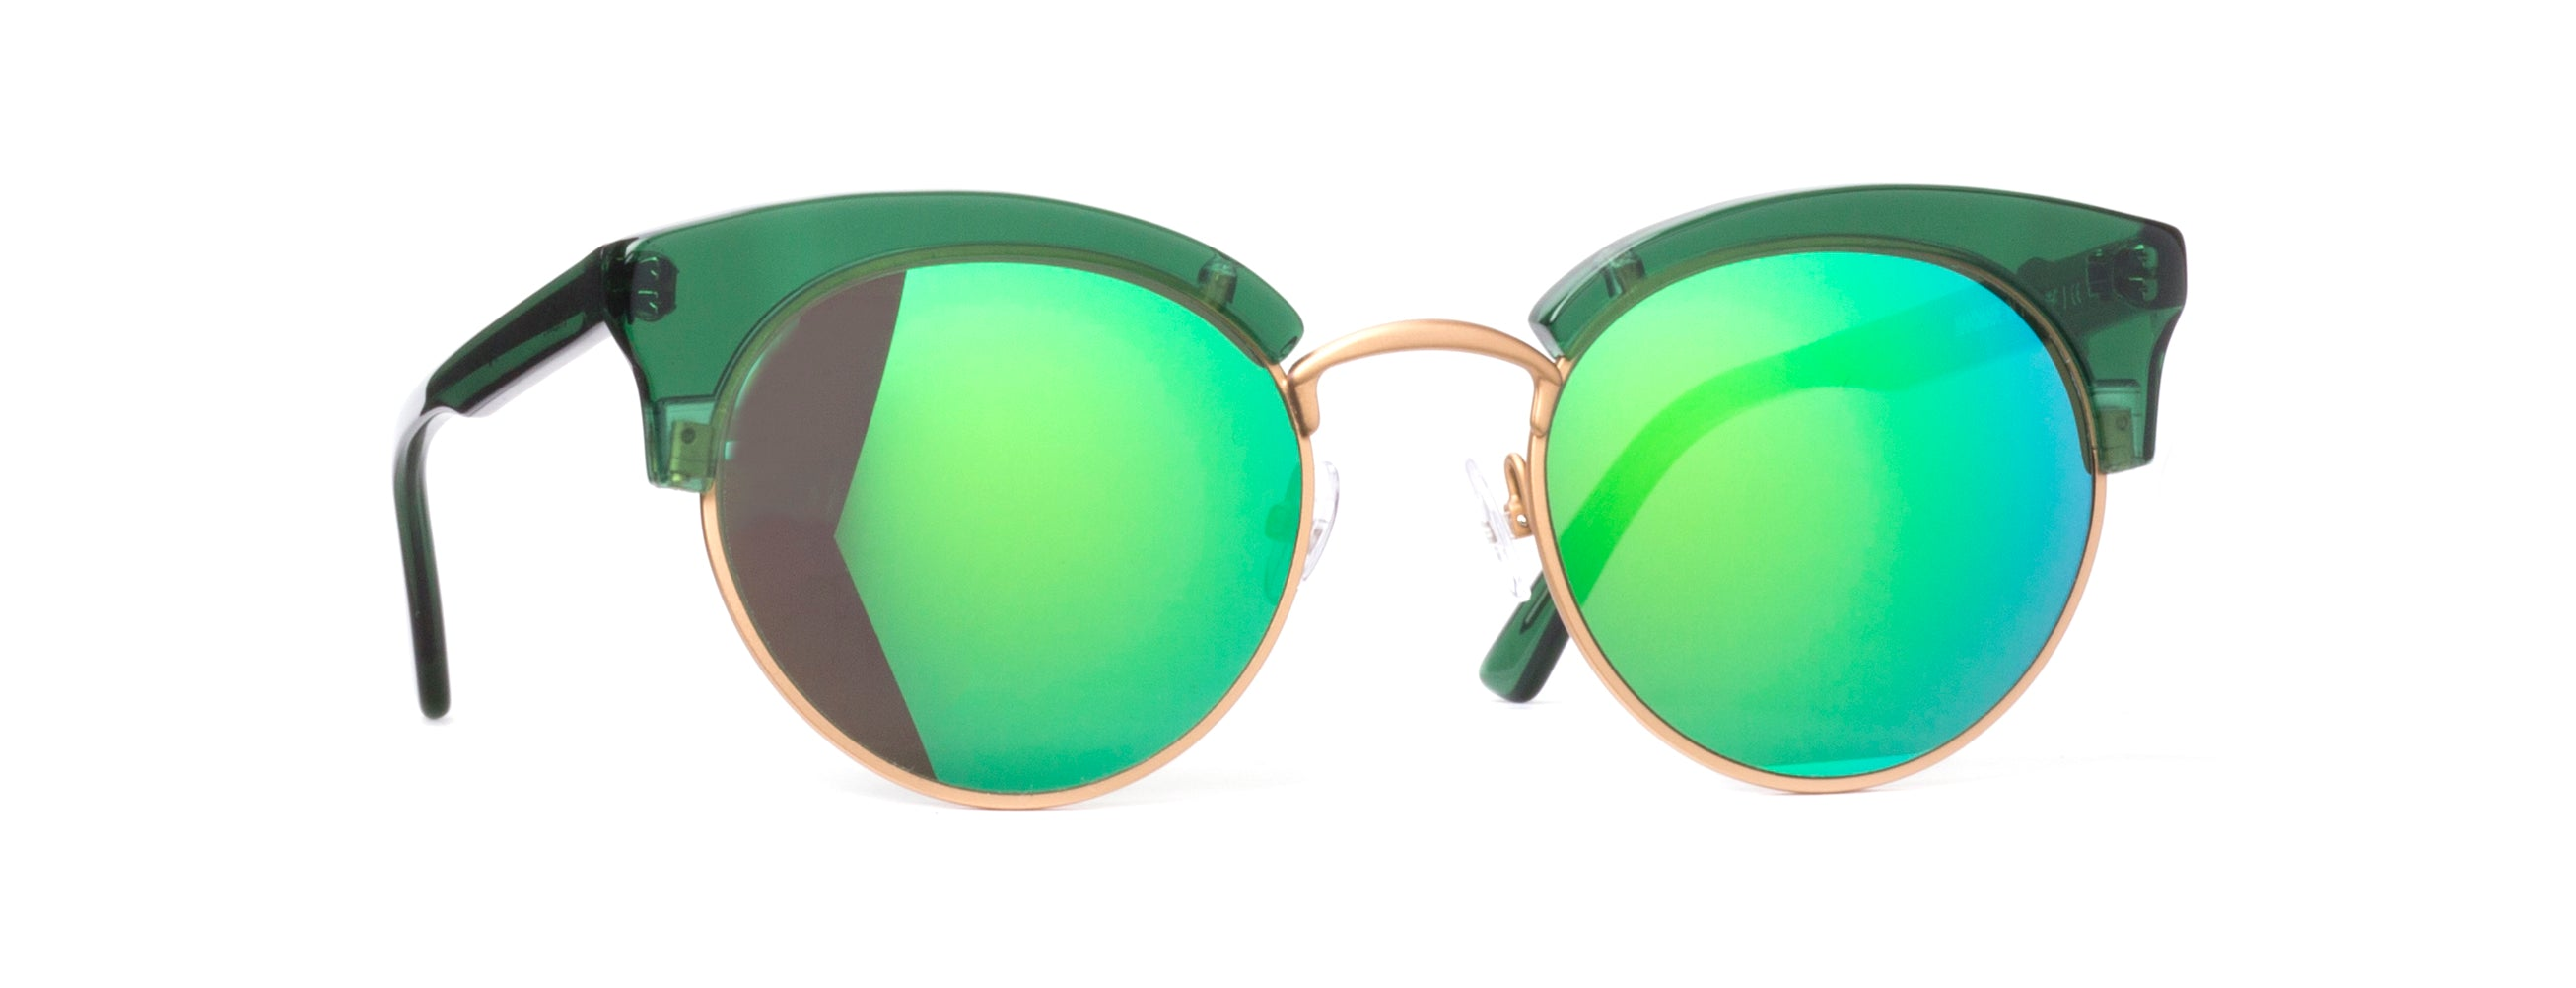 Laura Sunglasses by Peter & May